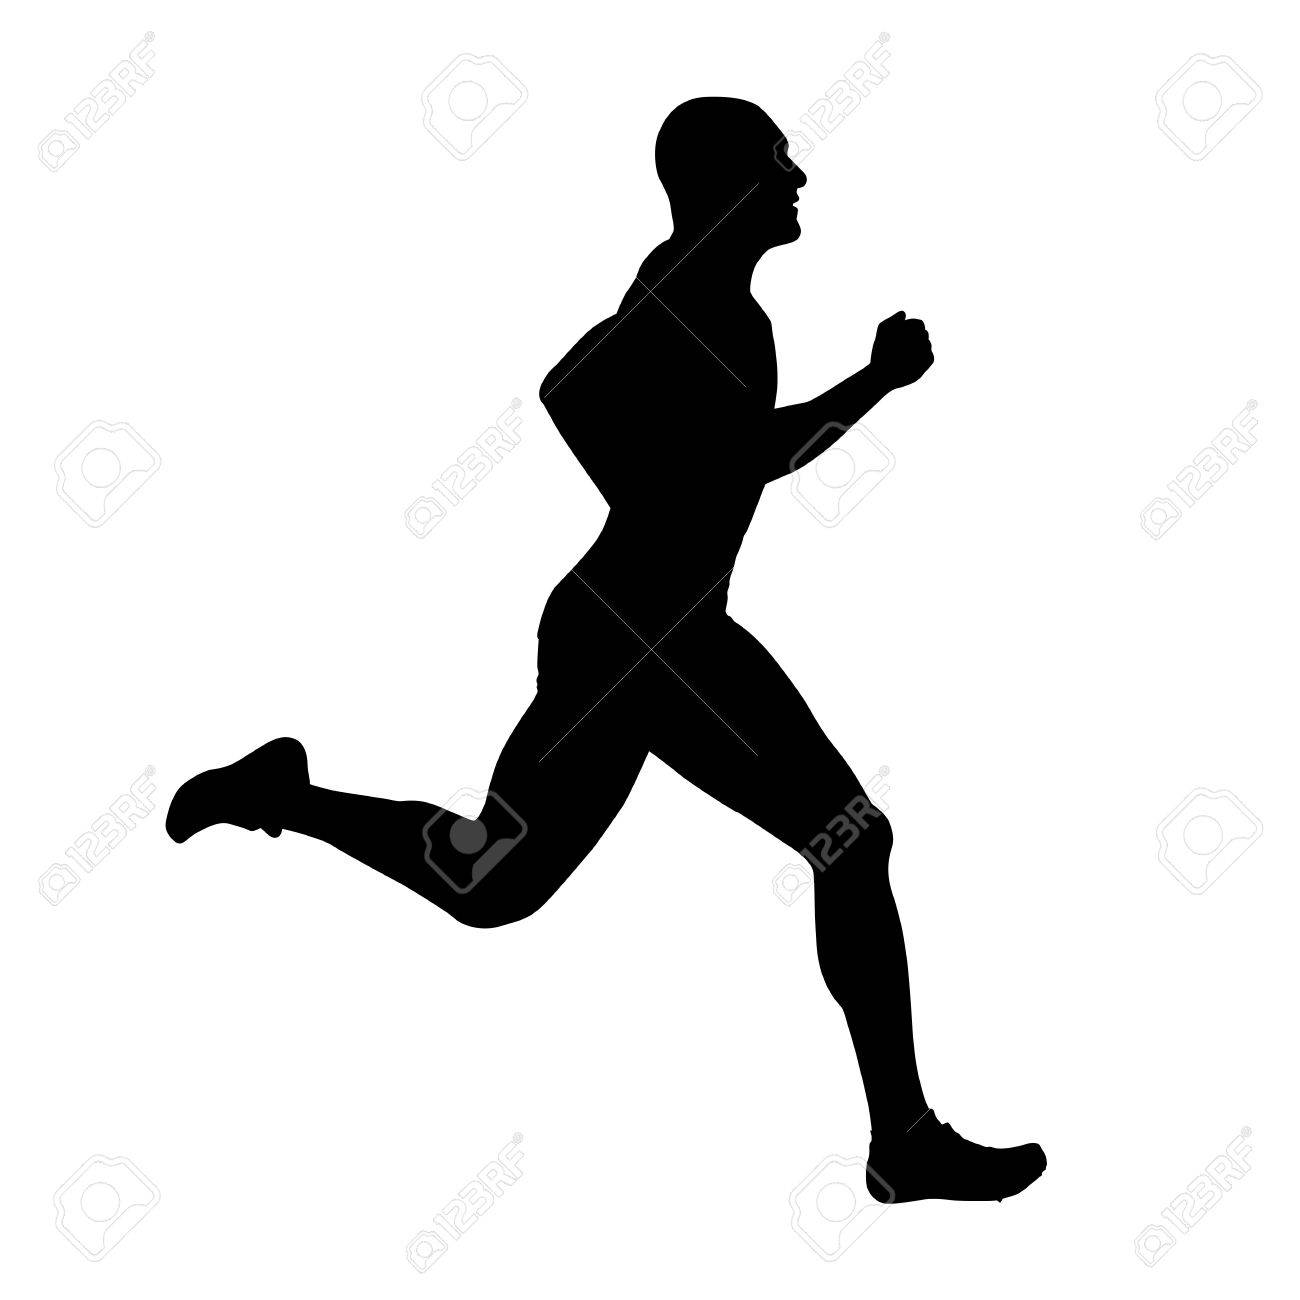 runner vector silhouette side view sprinting athlete royalty free cliparts vectors and stock illustration image 76445351 runner vector silhouette side view sprinting athlete